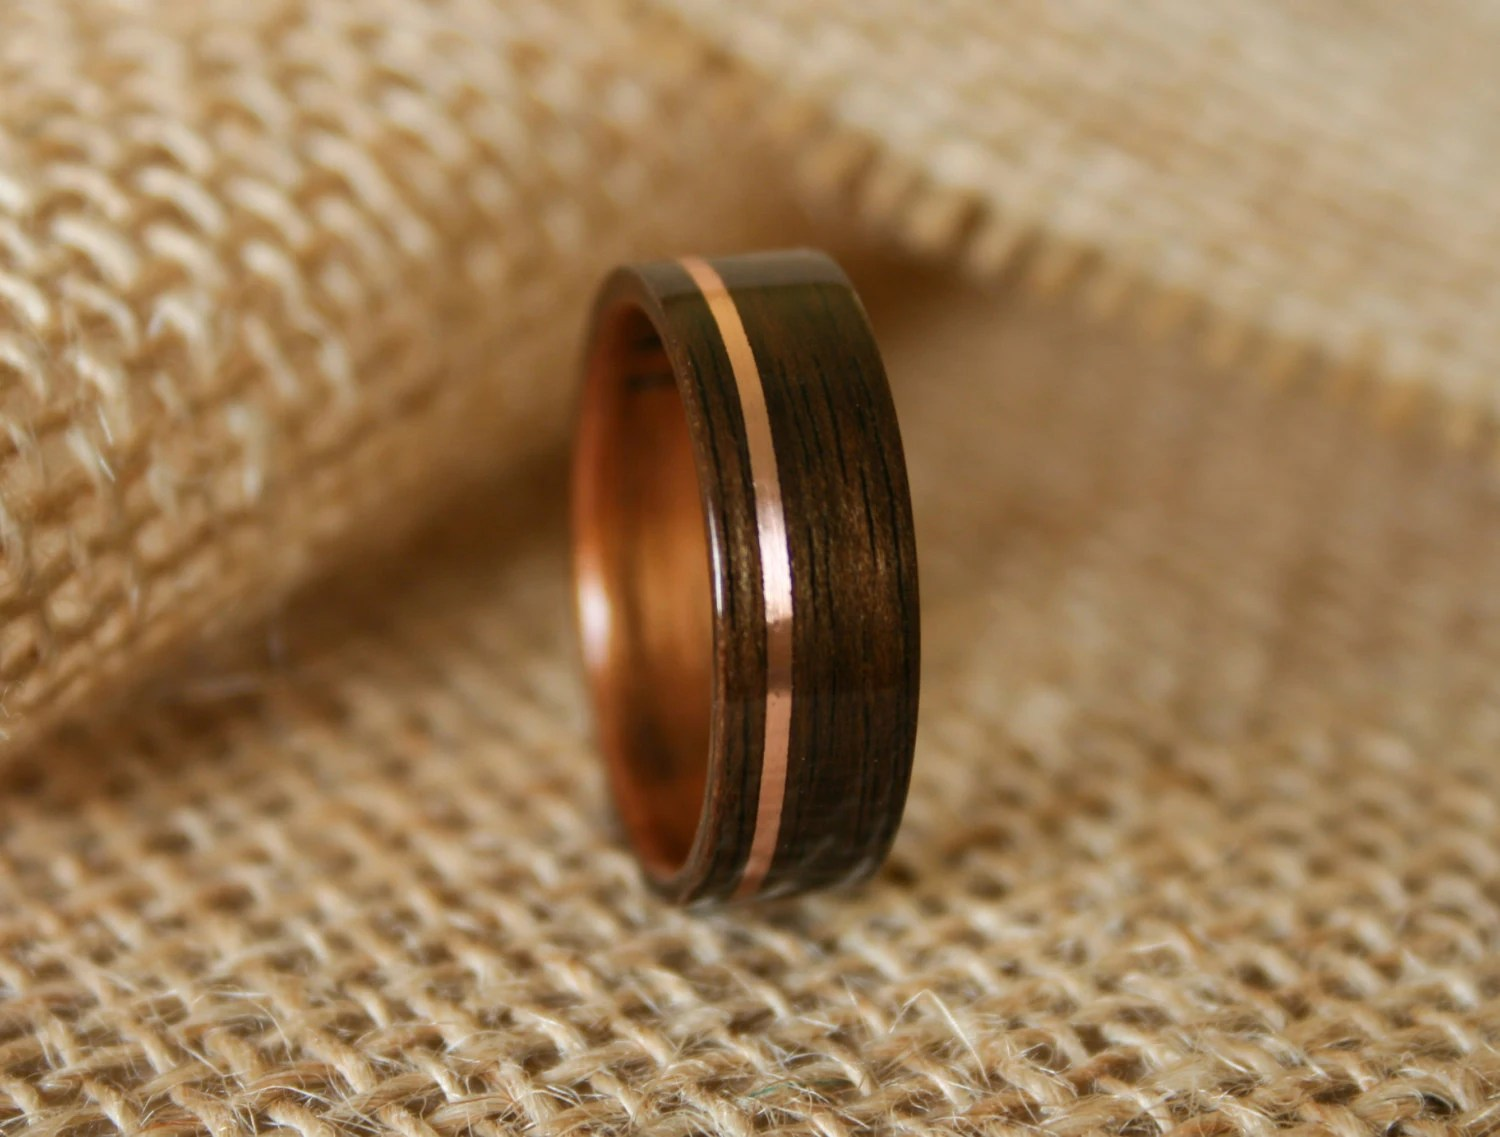 mens wedding band flexible wedding ring Men s Wooden Wedding Band with 14k Rose Gold Inlay in Macassar Ebony Wood with Koa Wood Lining Hand Crafted Wooden Ring